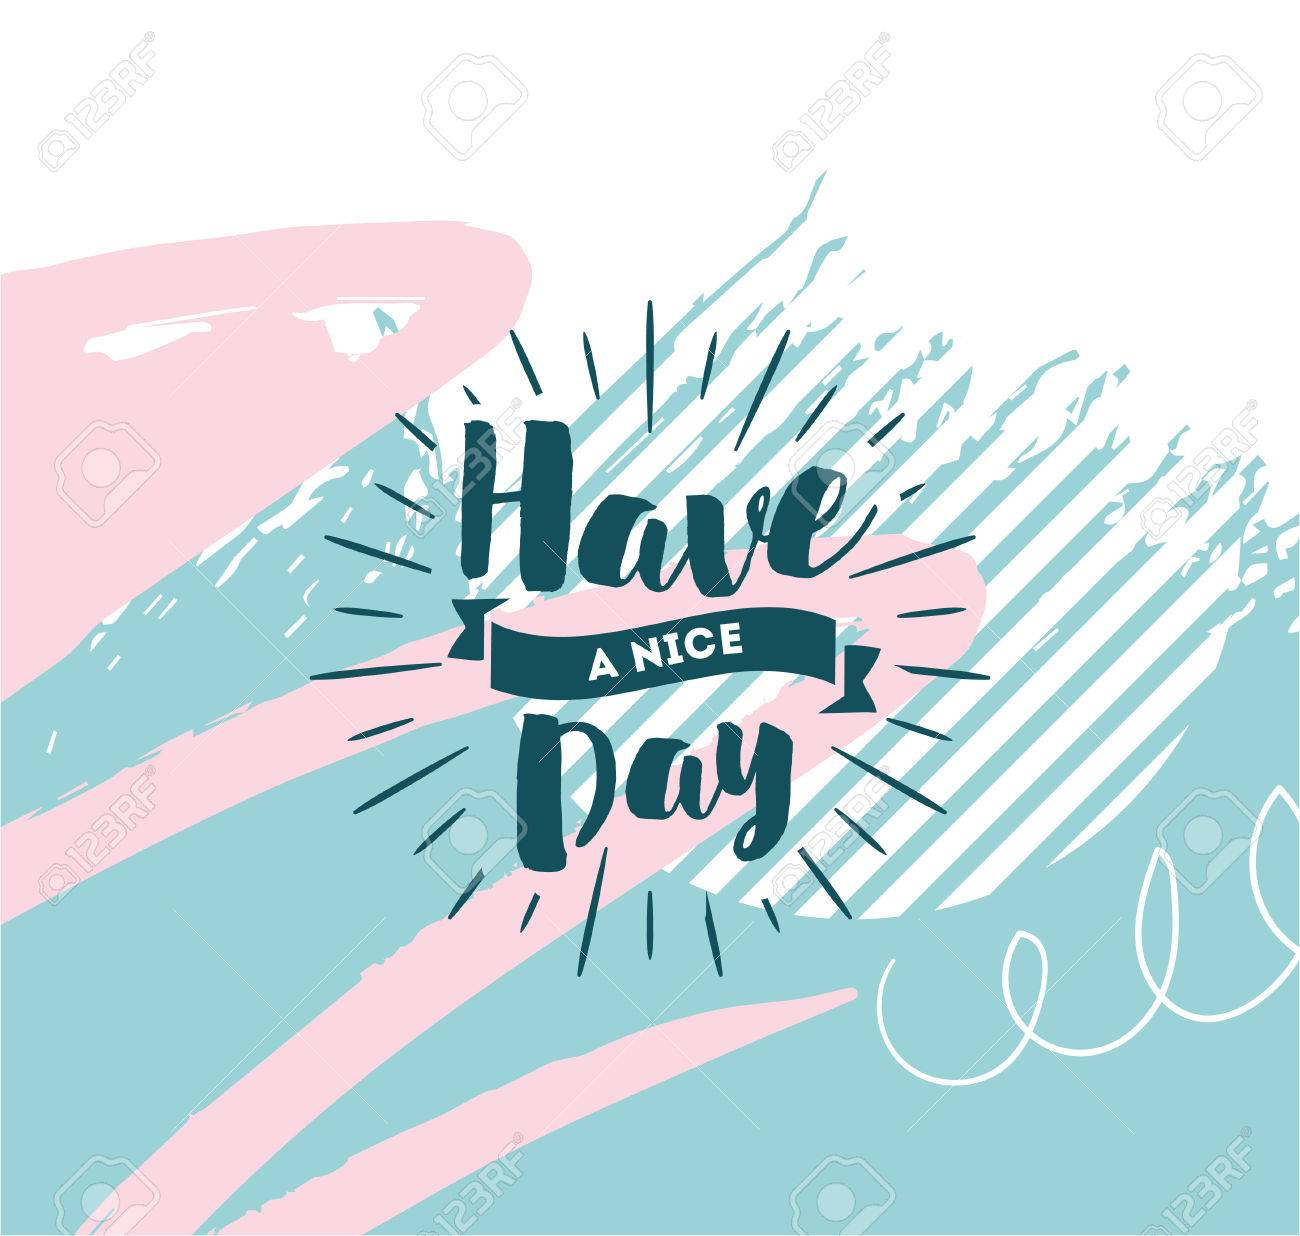 Have A Nice Day. Inspirational Quote, Wishing. Typography For Poster,  Invitation,